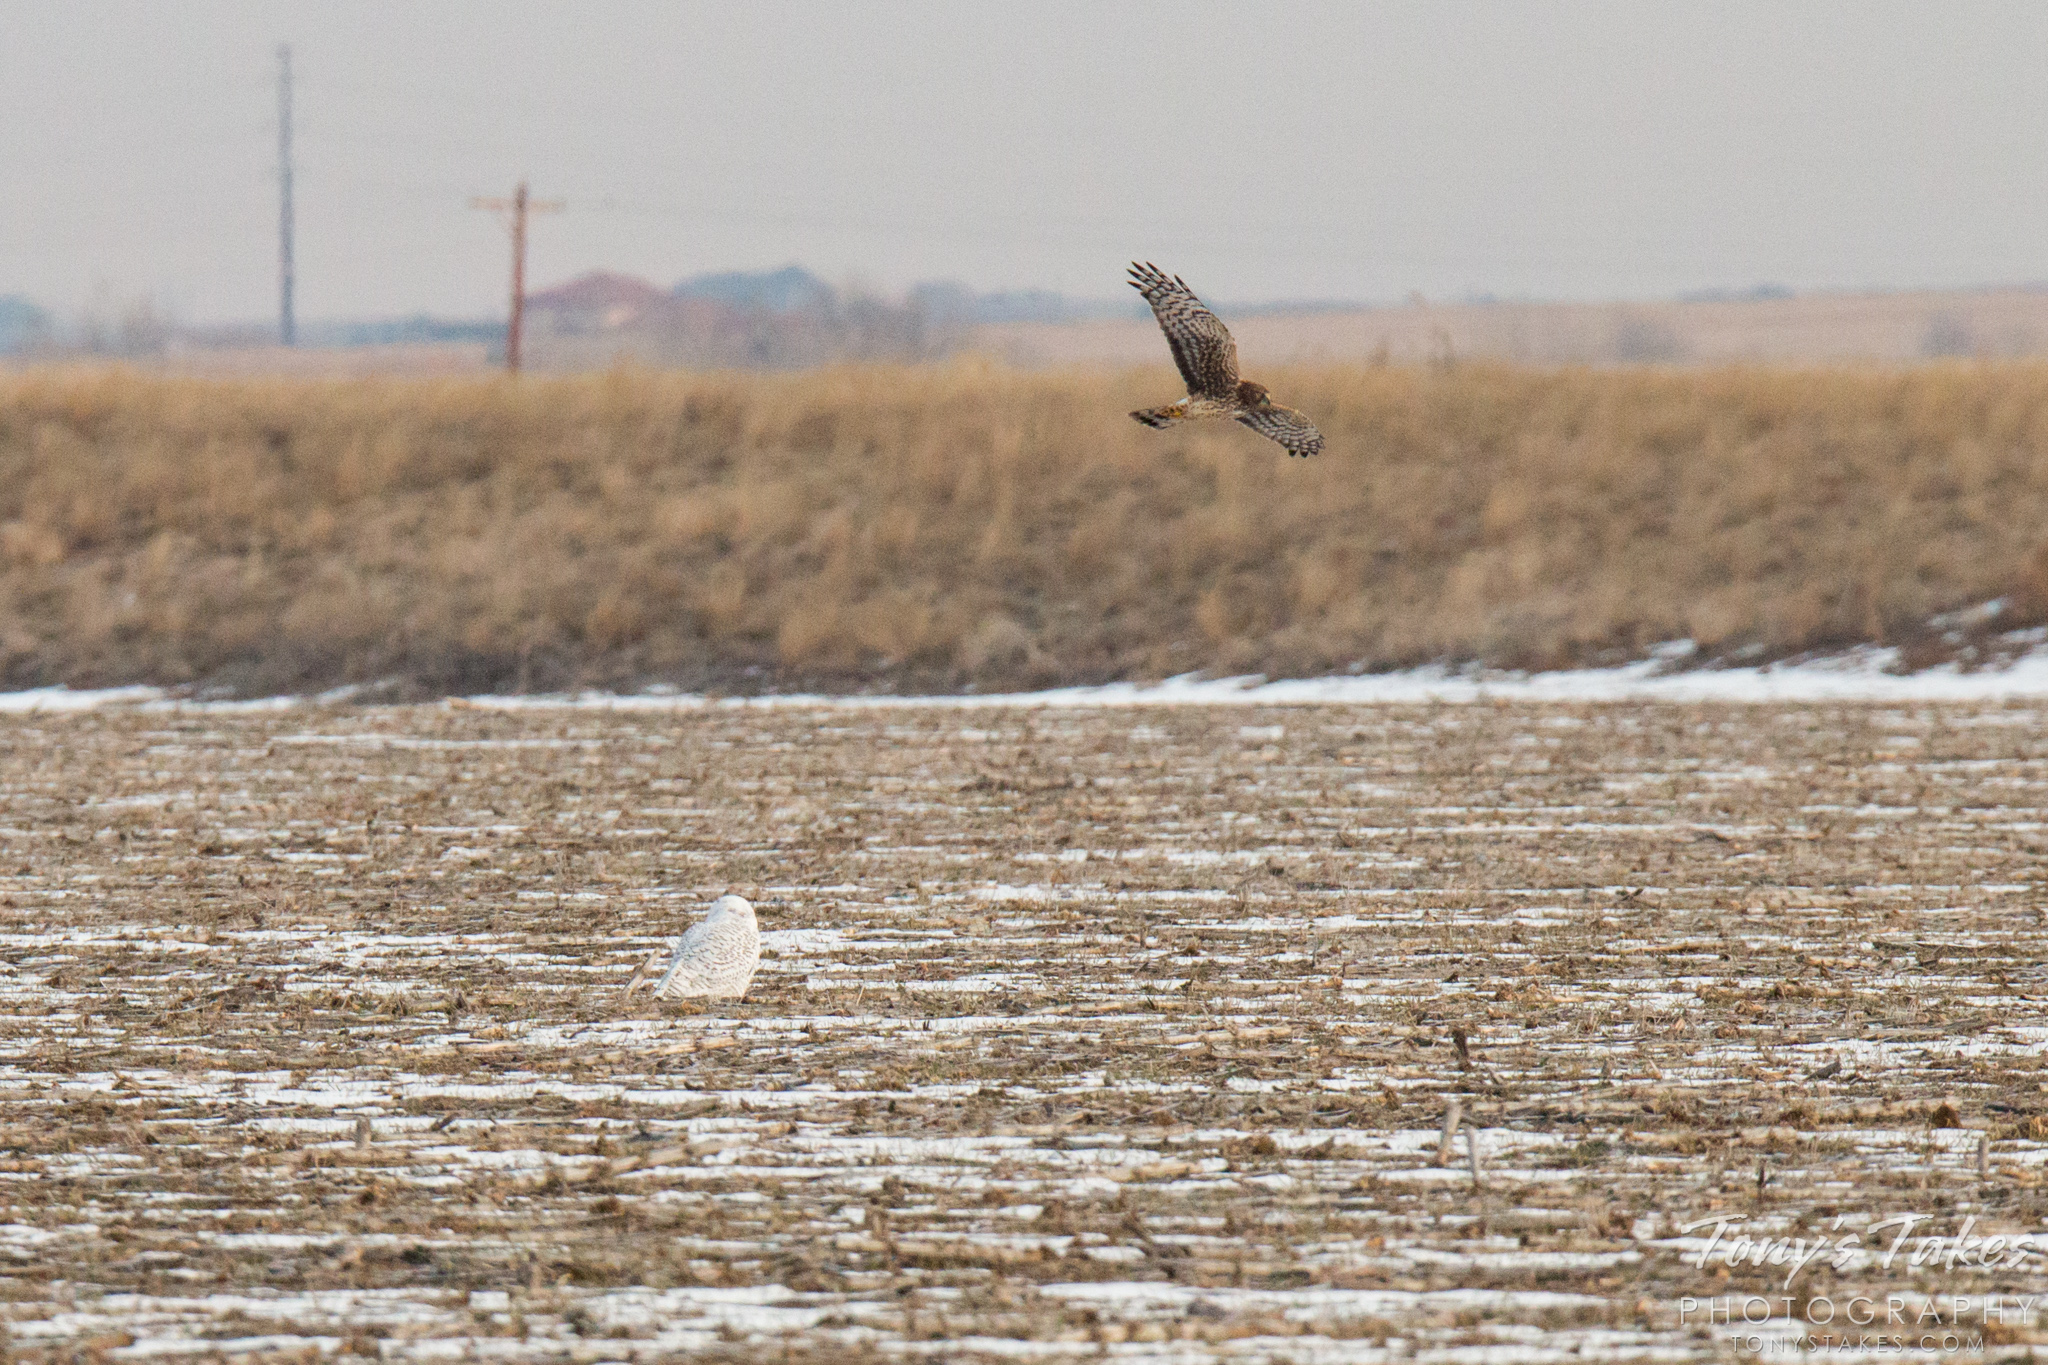 A Northern Harrier hassles a Snowy Owl on the Colorado plains. (© Tony's Takes)